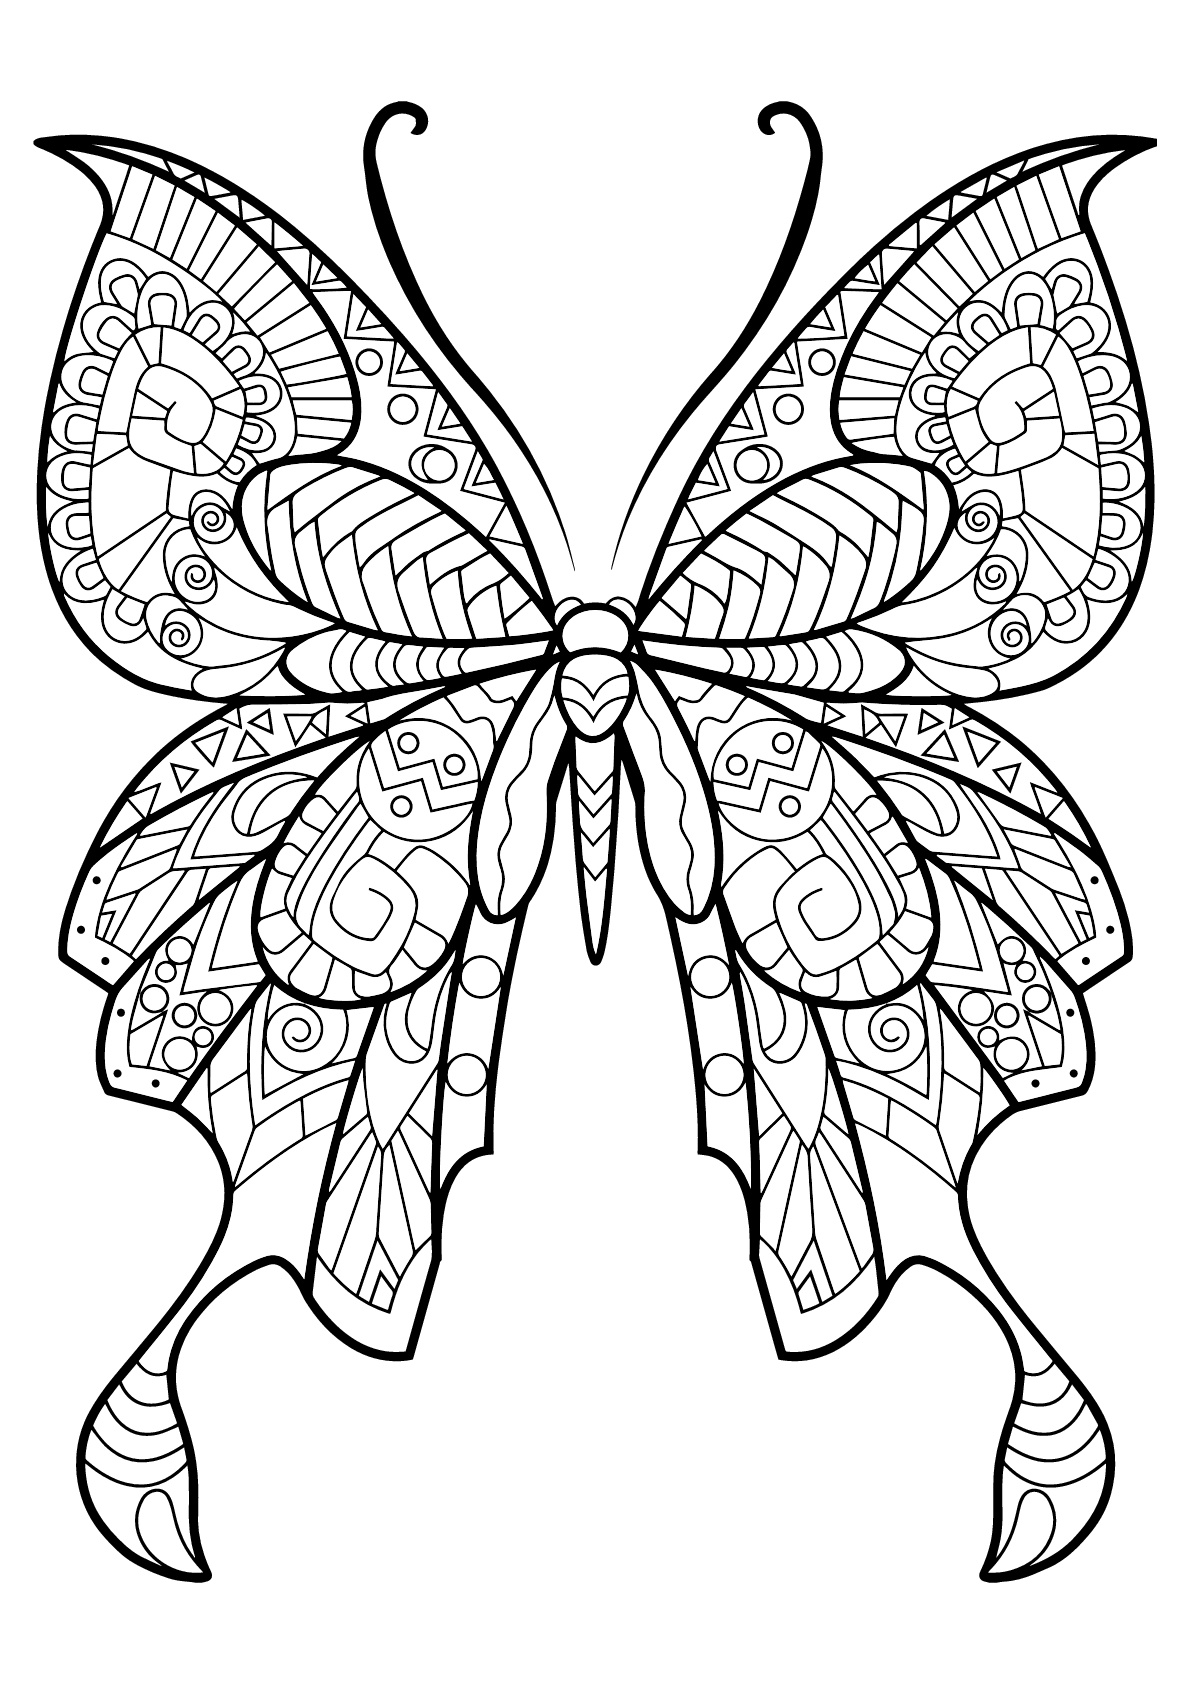 coloring pages with butterflies butterfly beautiful patterns 8 butterflies insects pages with coloring butterflies